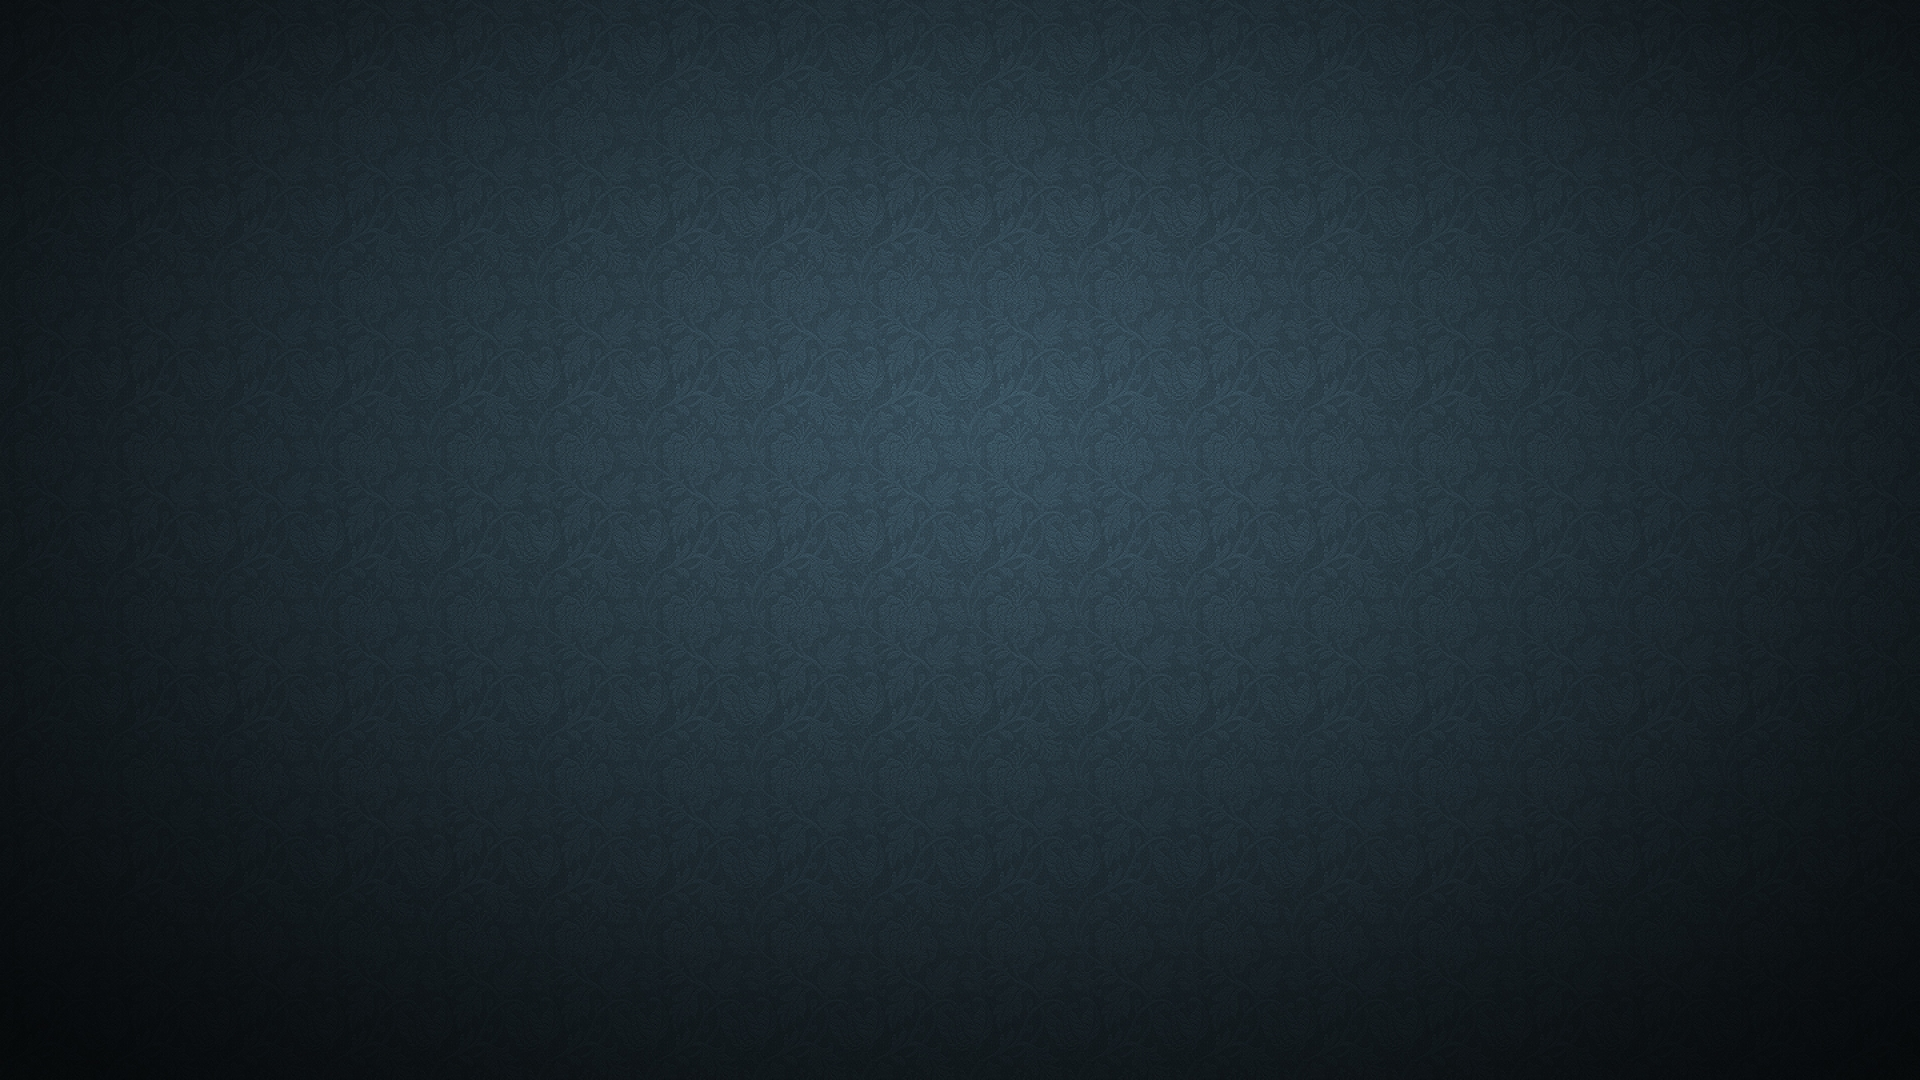 Minimal pattern wallpaper